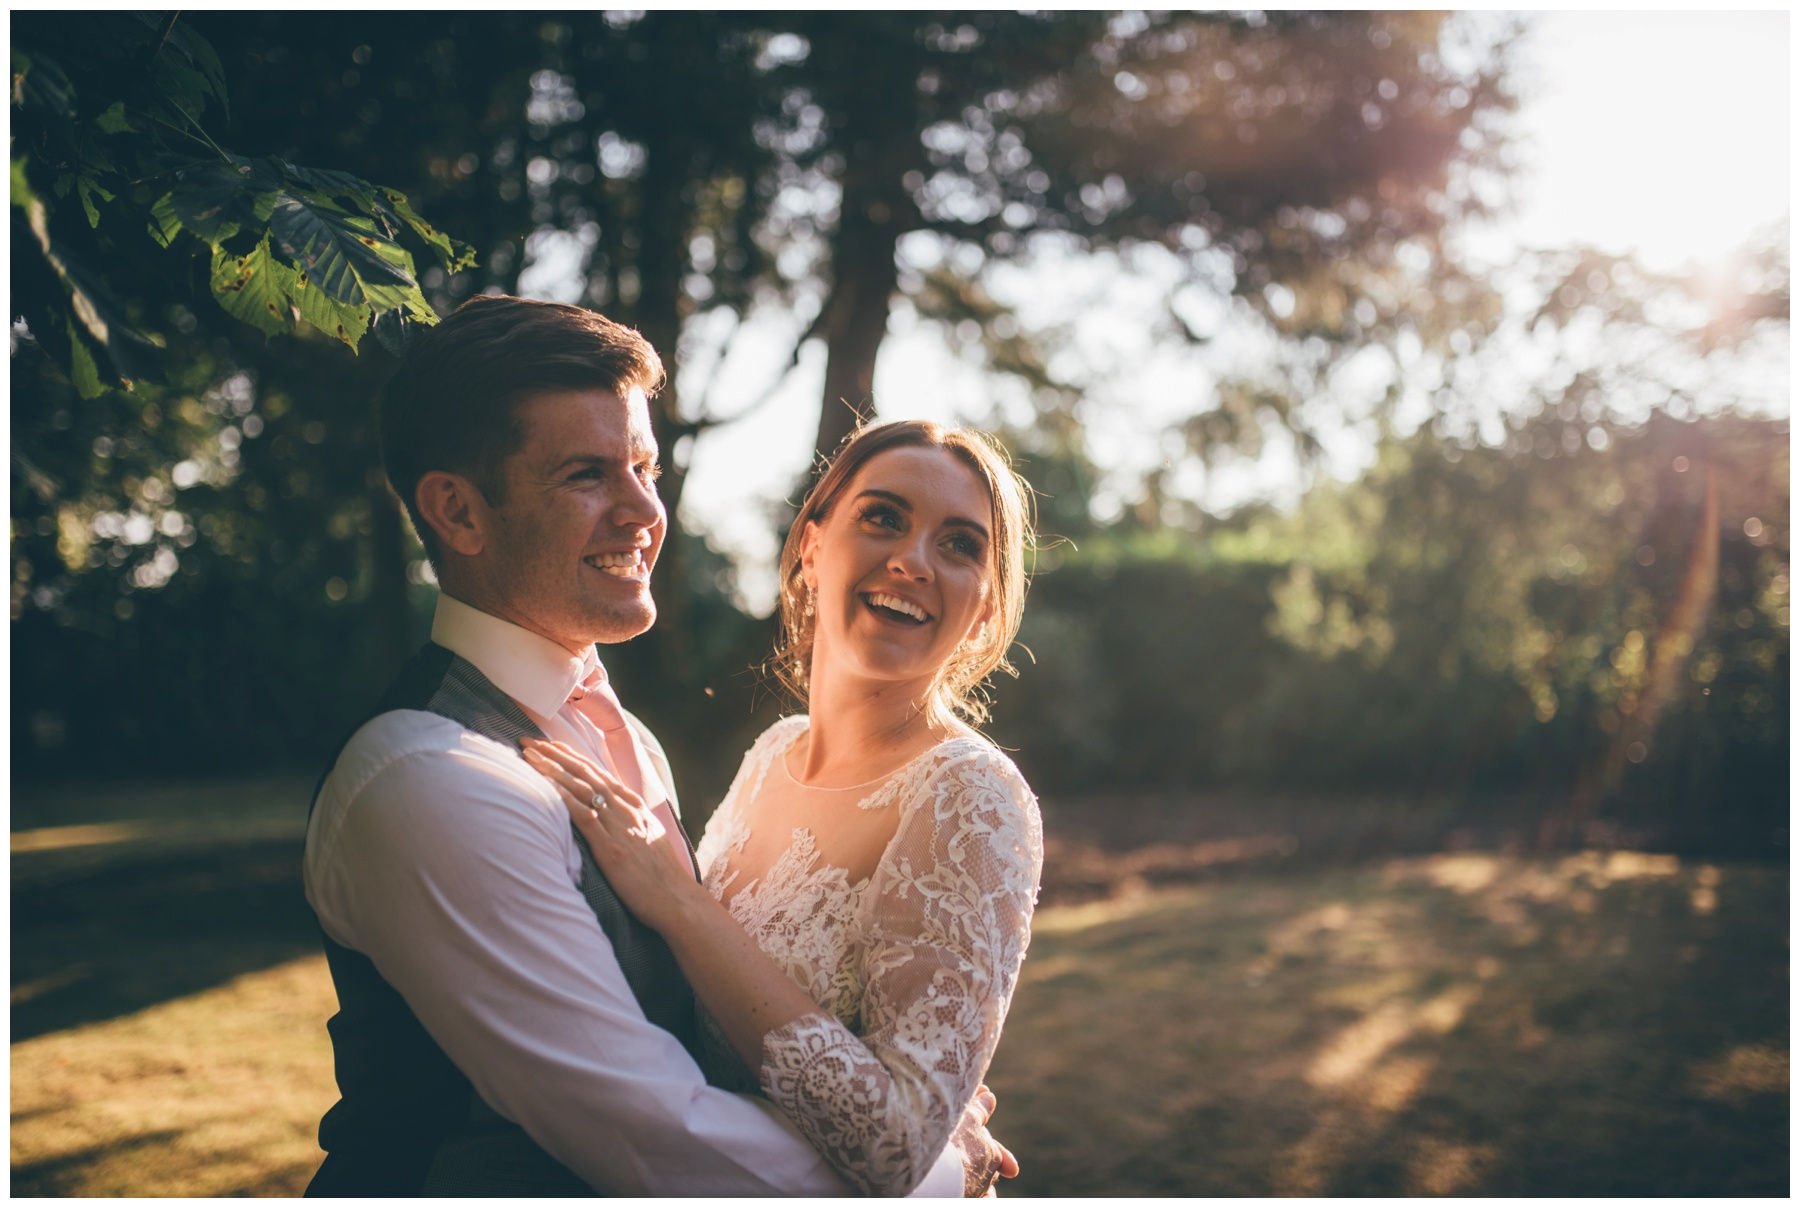 Bride and Groom in the golden hour at Tilstone House in Tarporley.